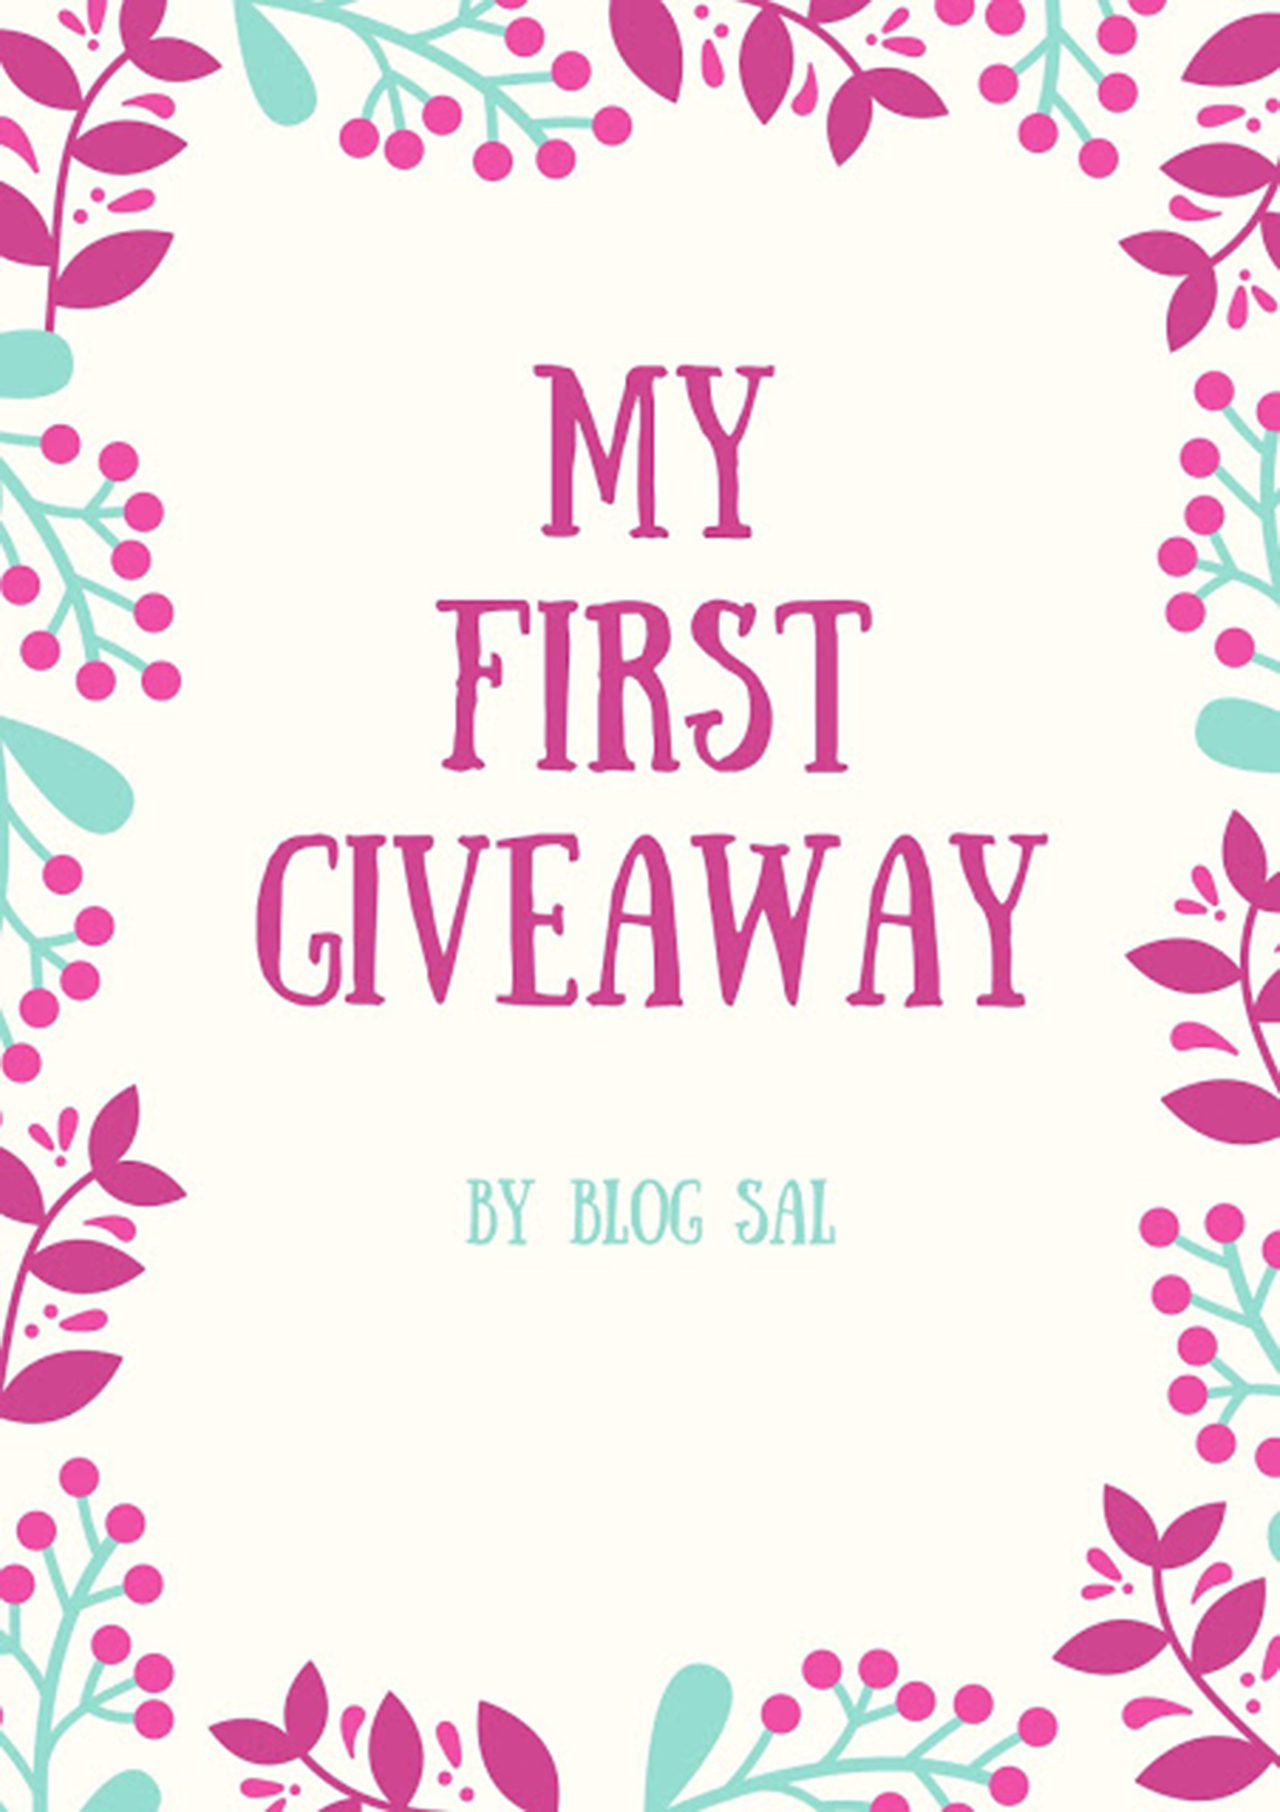 My First Giveaway By Blog Sal